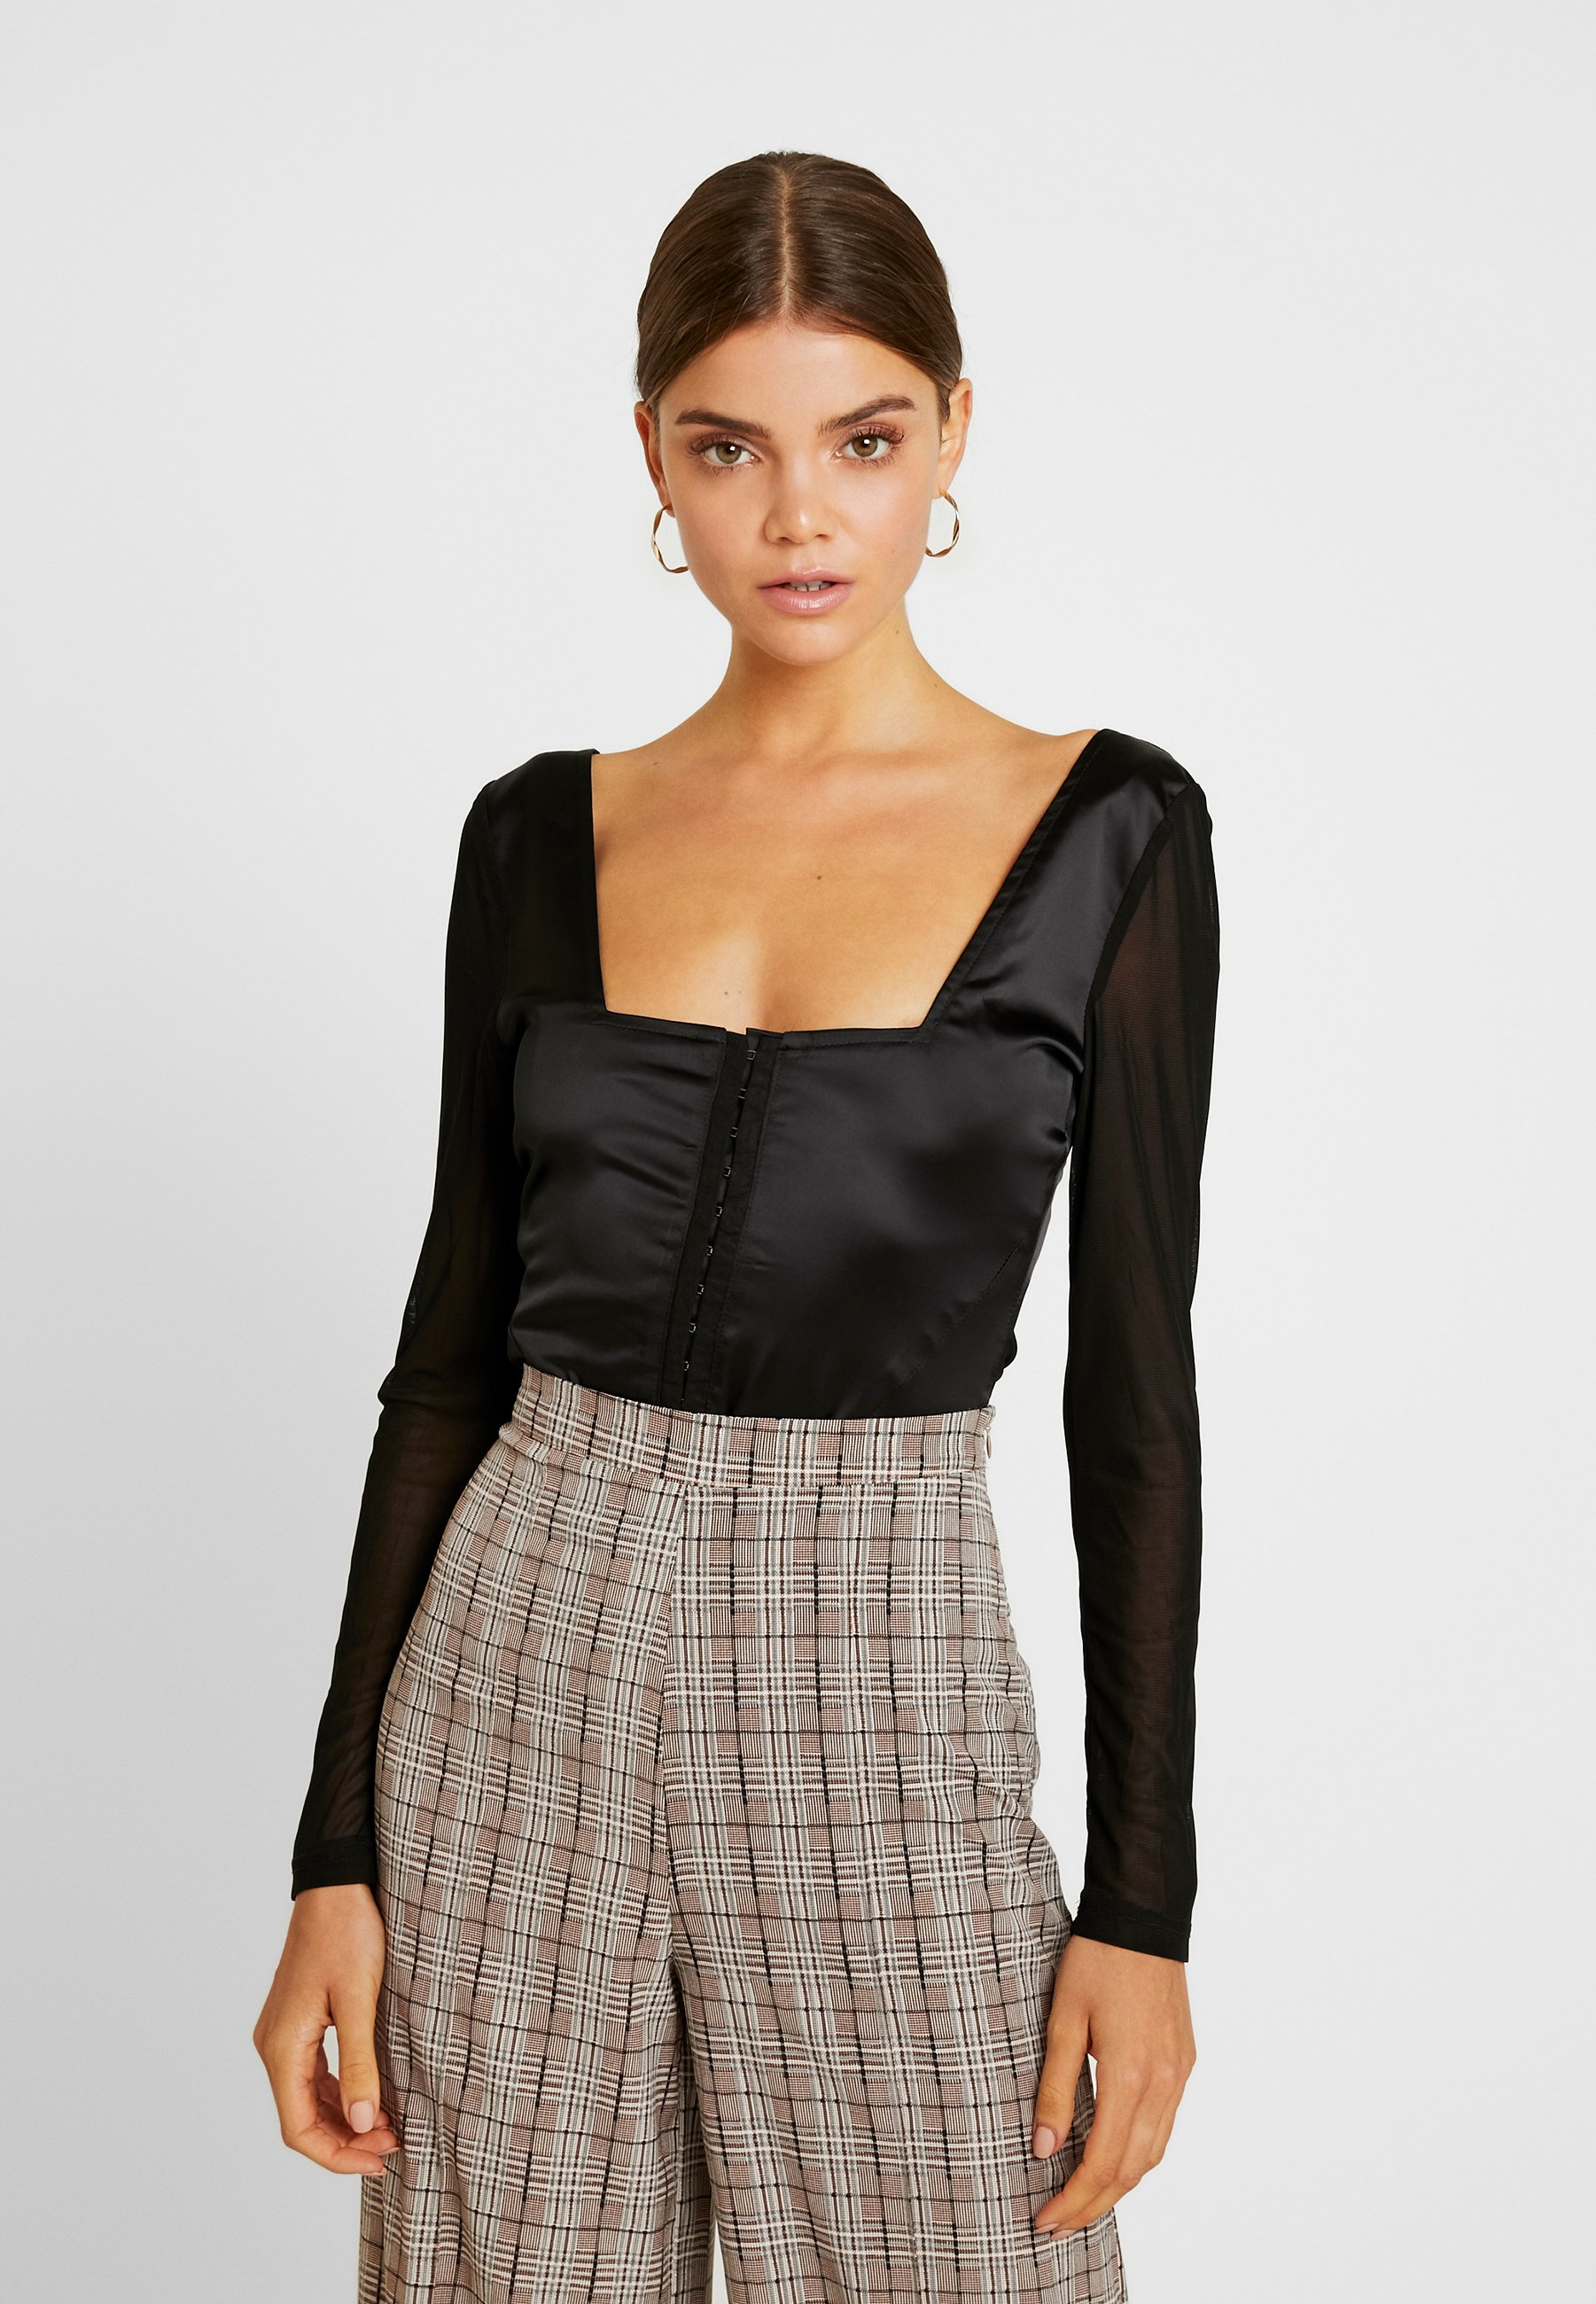 Black Sleeves Missguided Sleeves Missguided CorsetBlouse v0Py8OmwNn